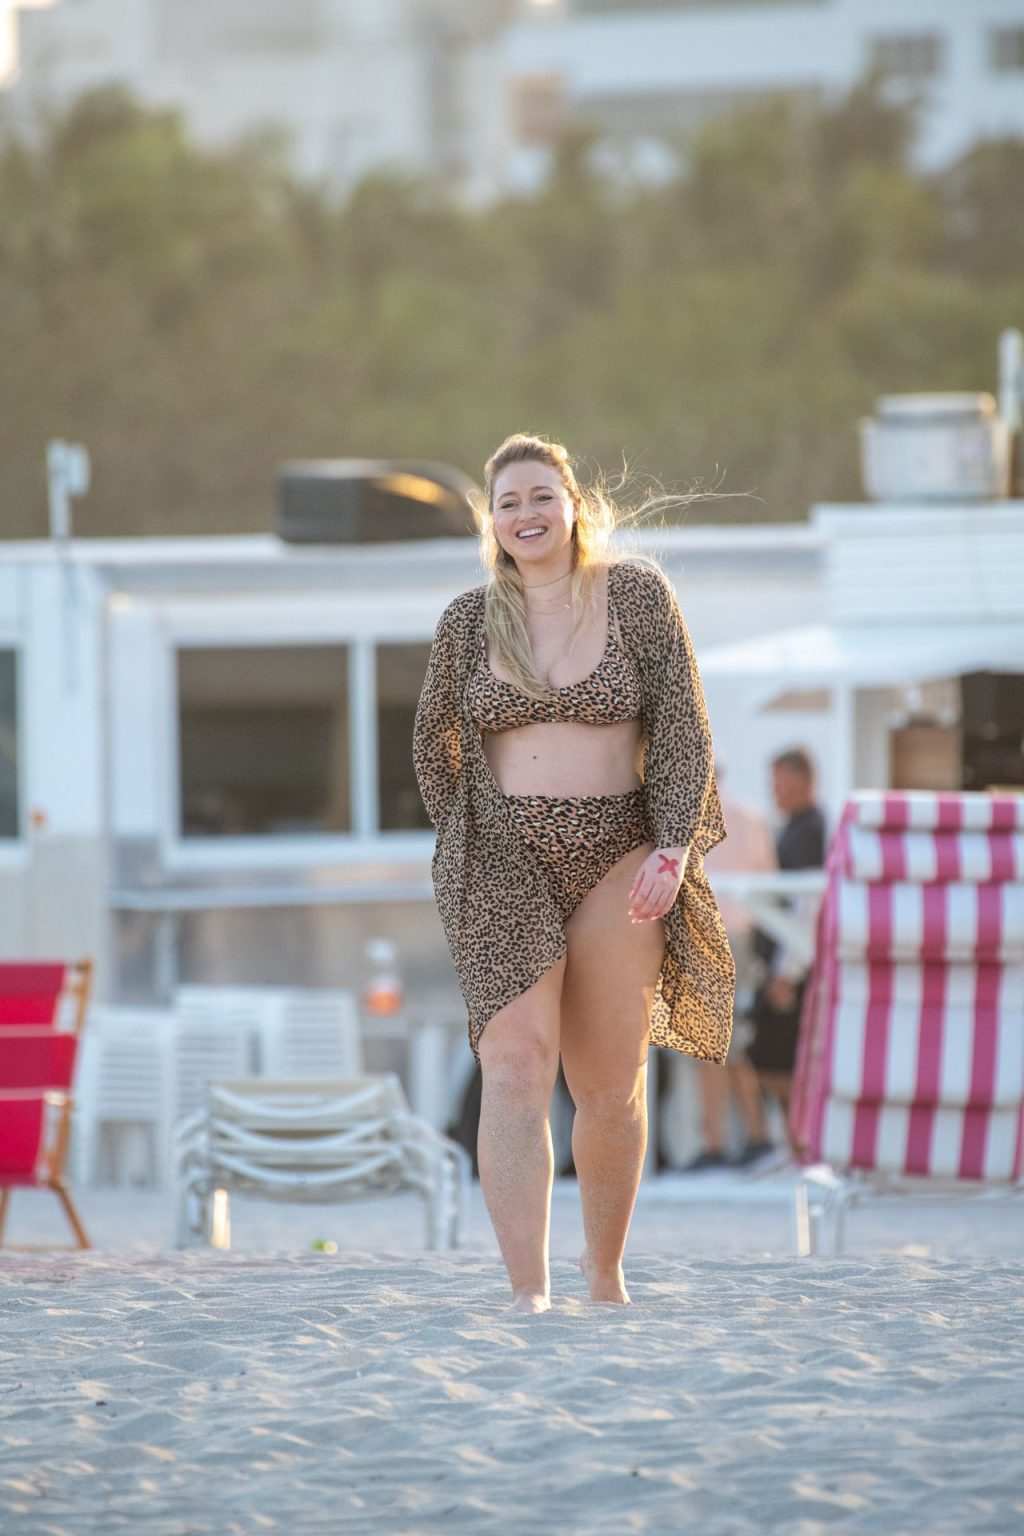 Iskra Lawrence Sexy The Fappening Blog 6 1024x1536 - Heavily Pregnant Model Iskra Lawrence Takes A Sunset Dip In Miami Beach (44 Photos)